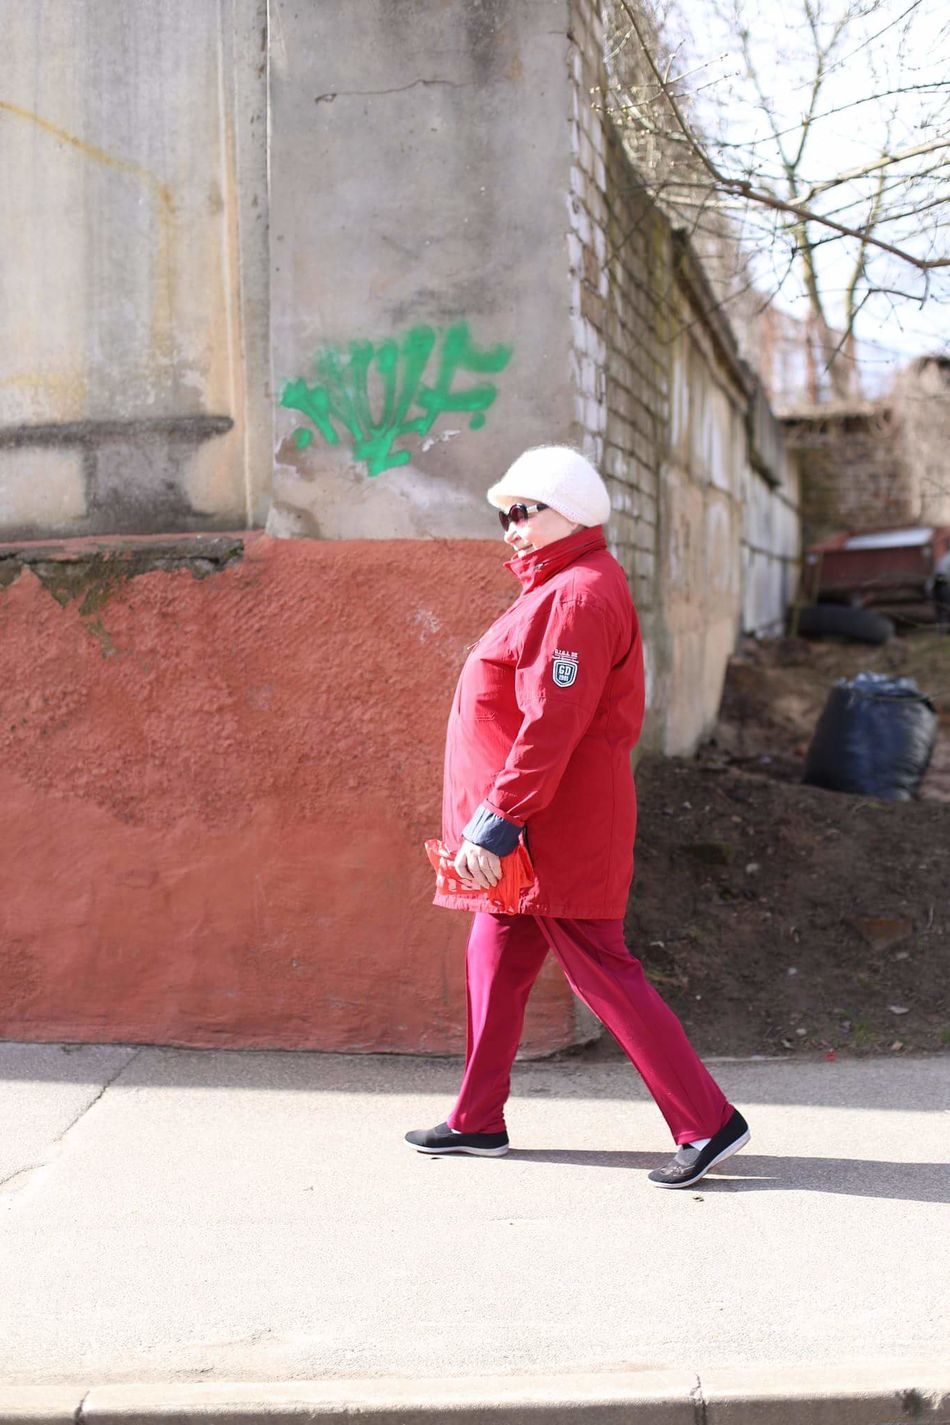 Street Photography Streetphotography Street Life Woman Feminine  Fashion Oldwoman Pensioner Fashion Redefined Redhead Collections